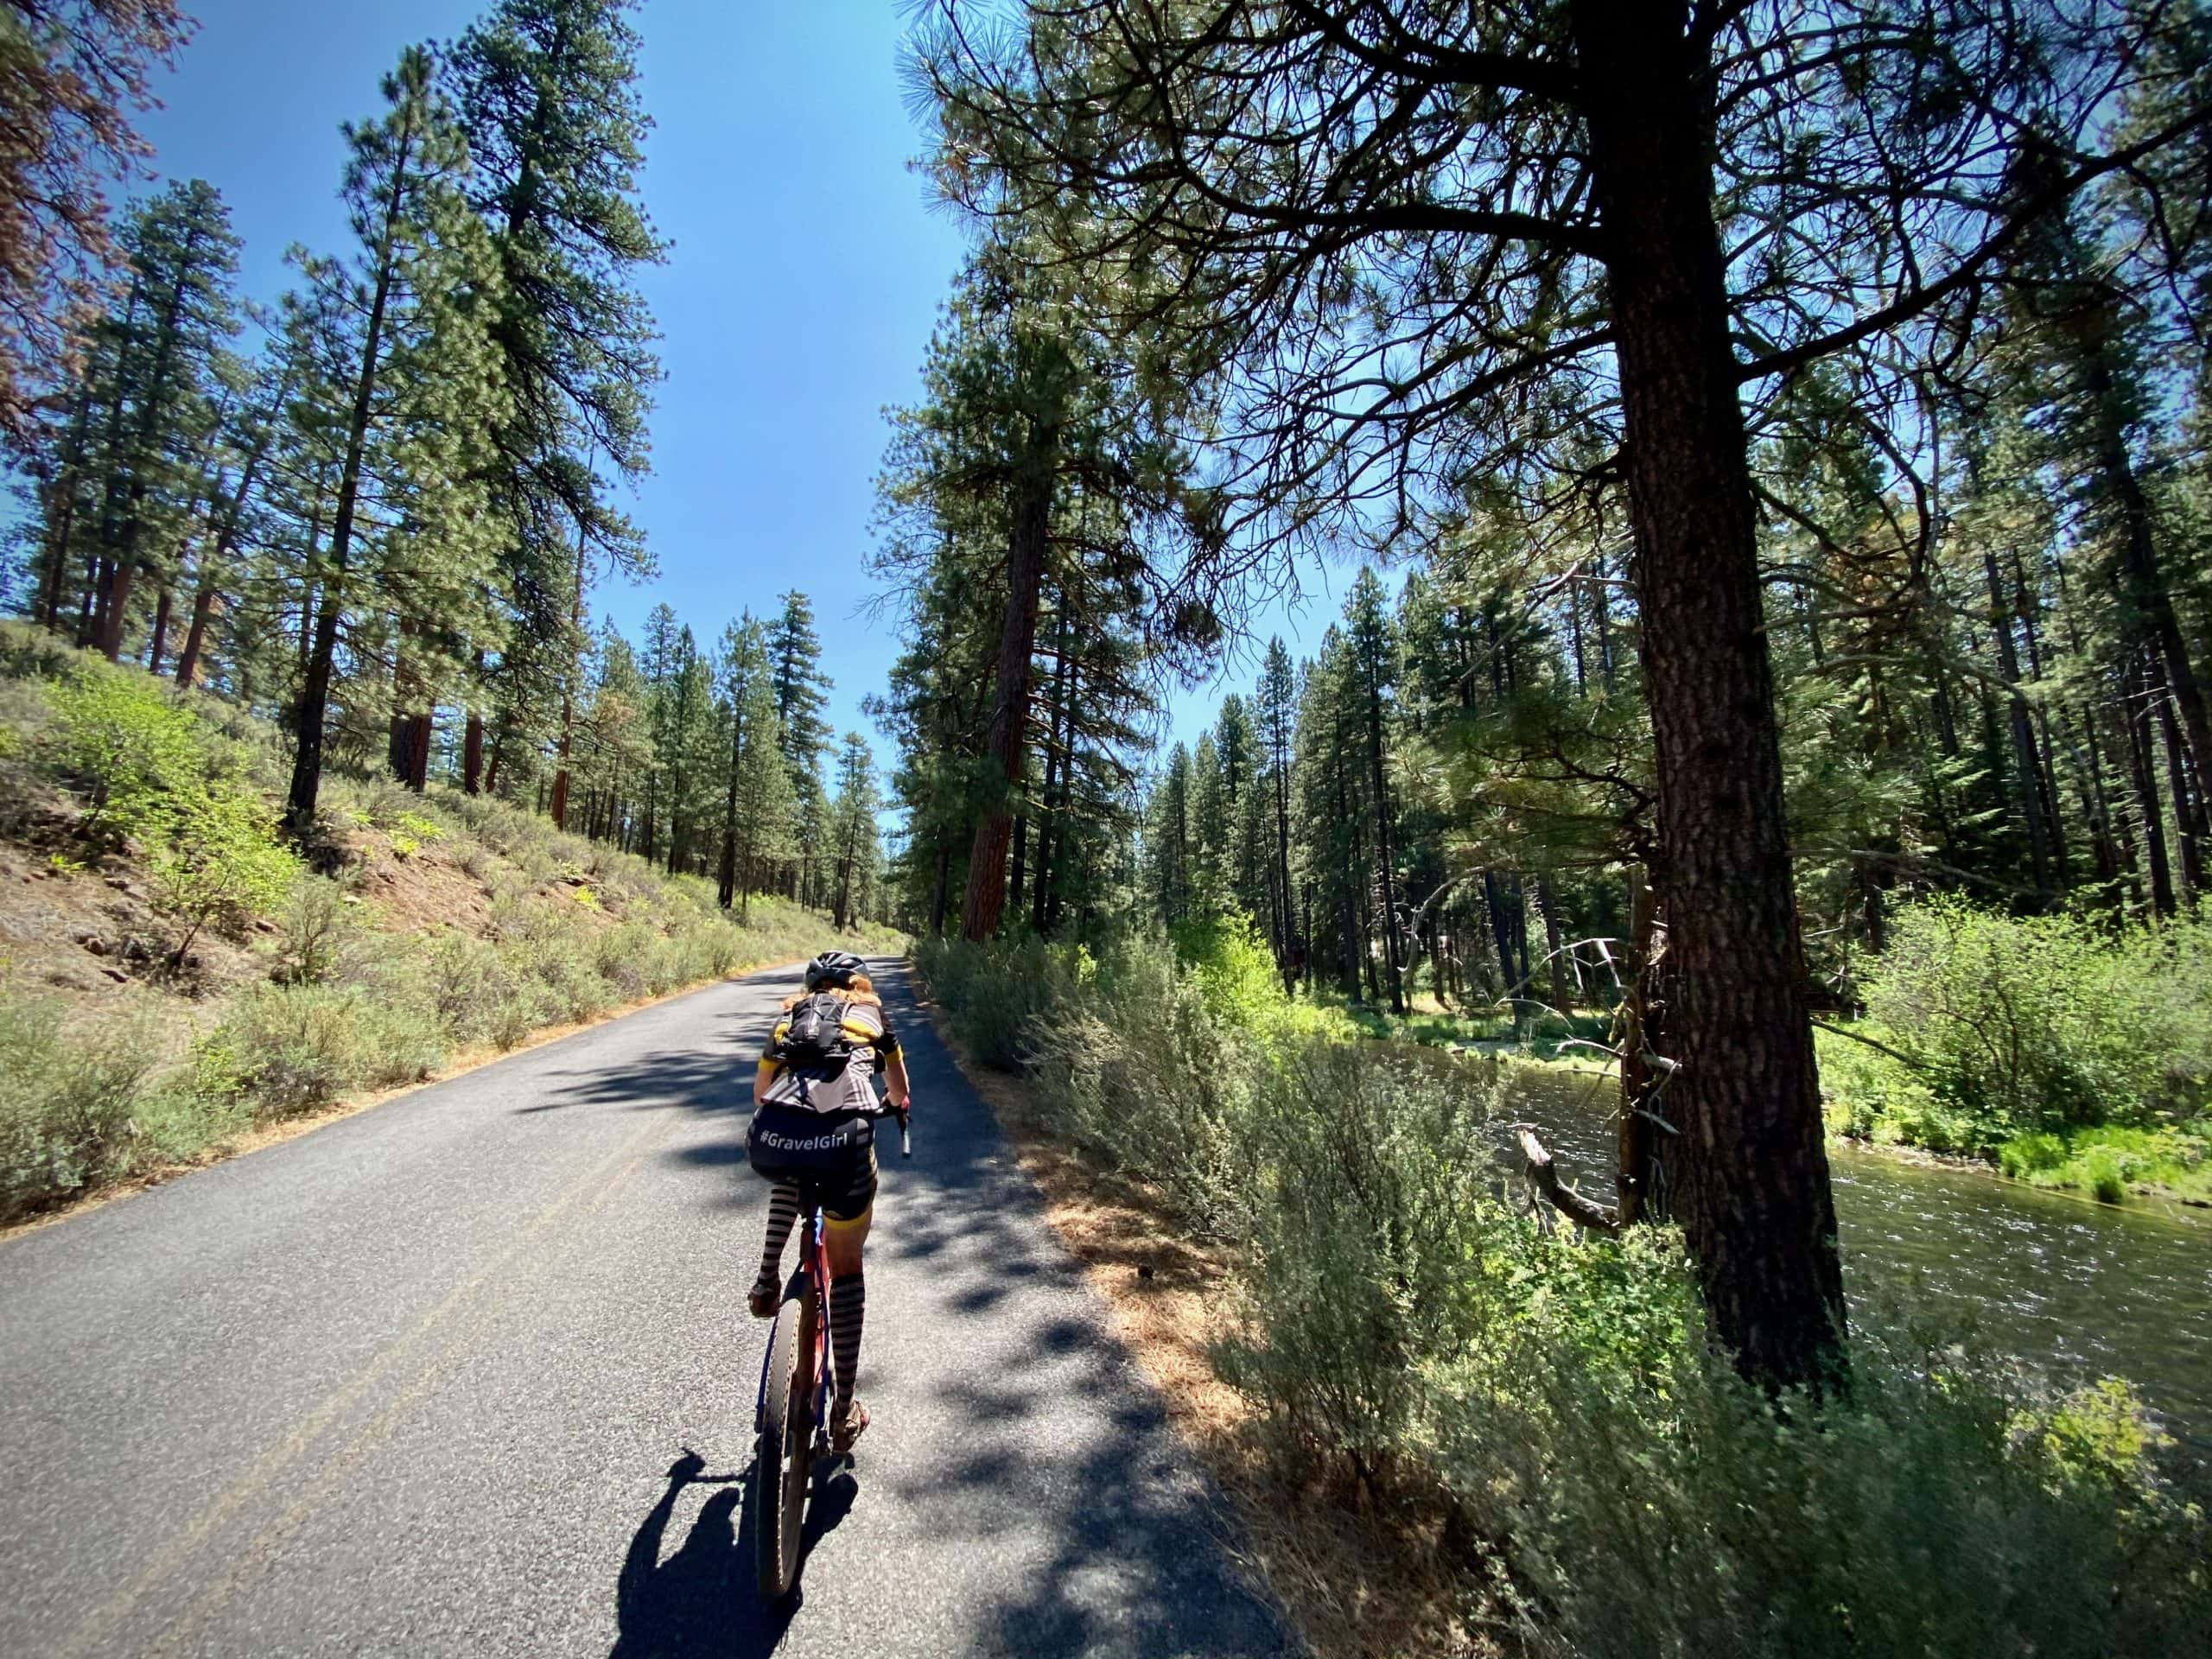 Cyclist riding the SW Metolius River road with the Metolius River to the right.